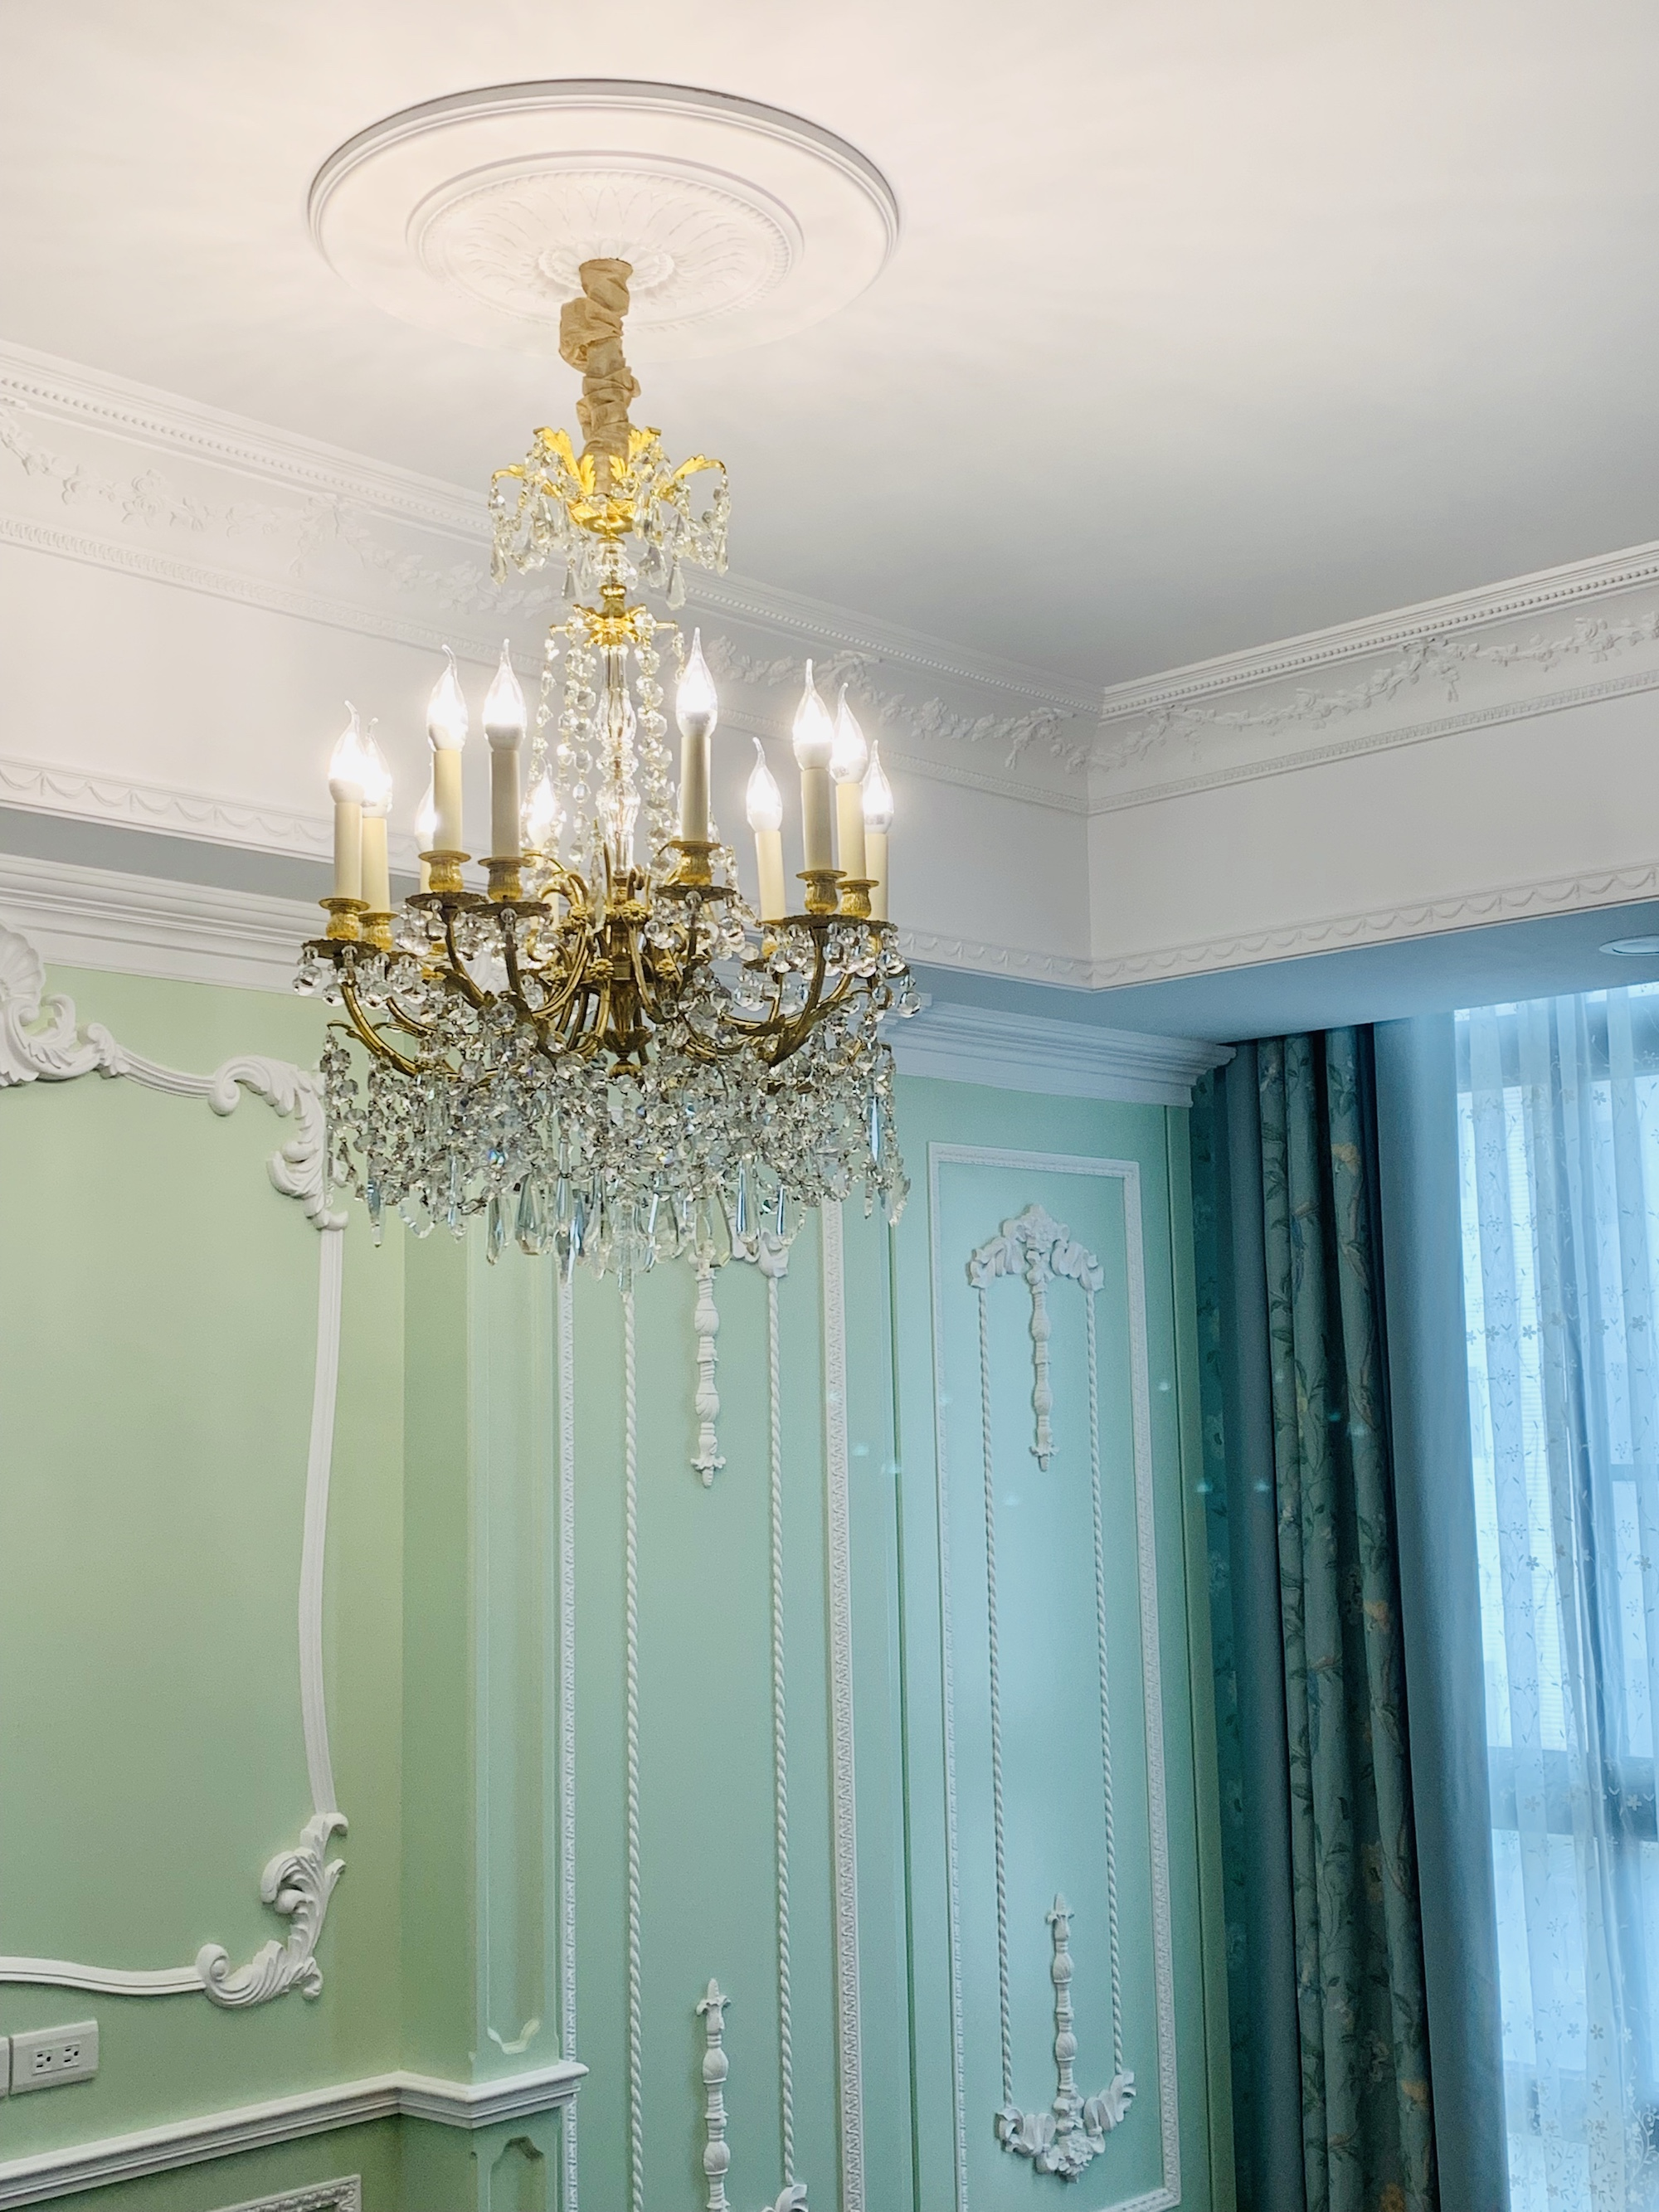 French chandelier in the style of Louis XVI in the bedroom